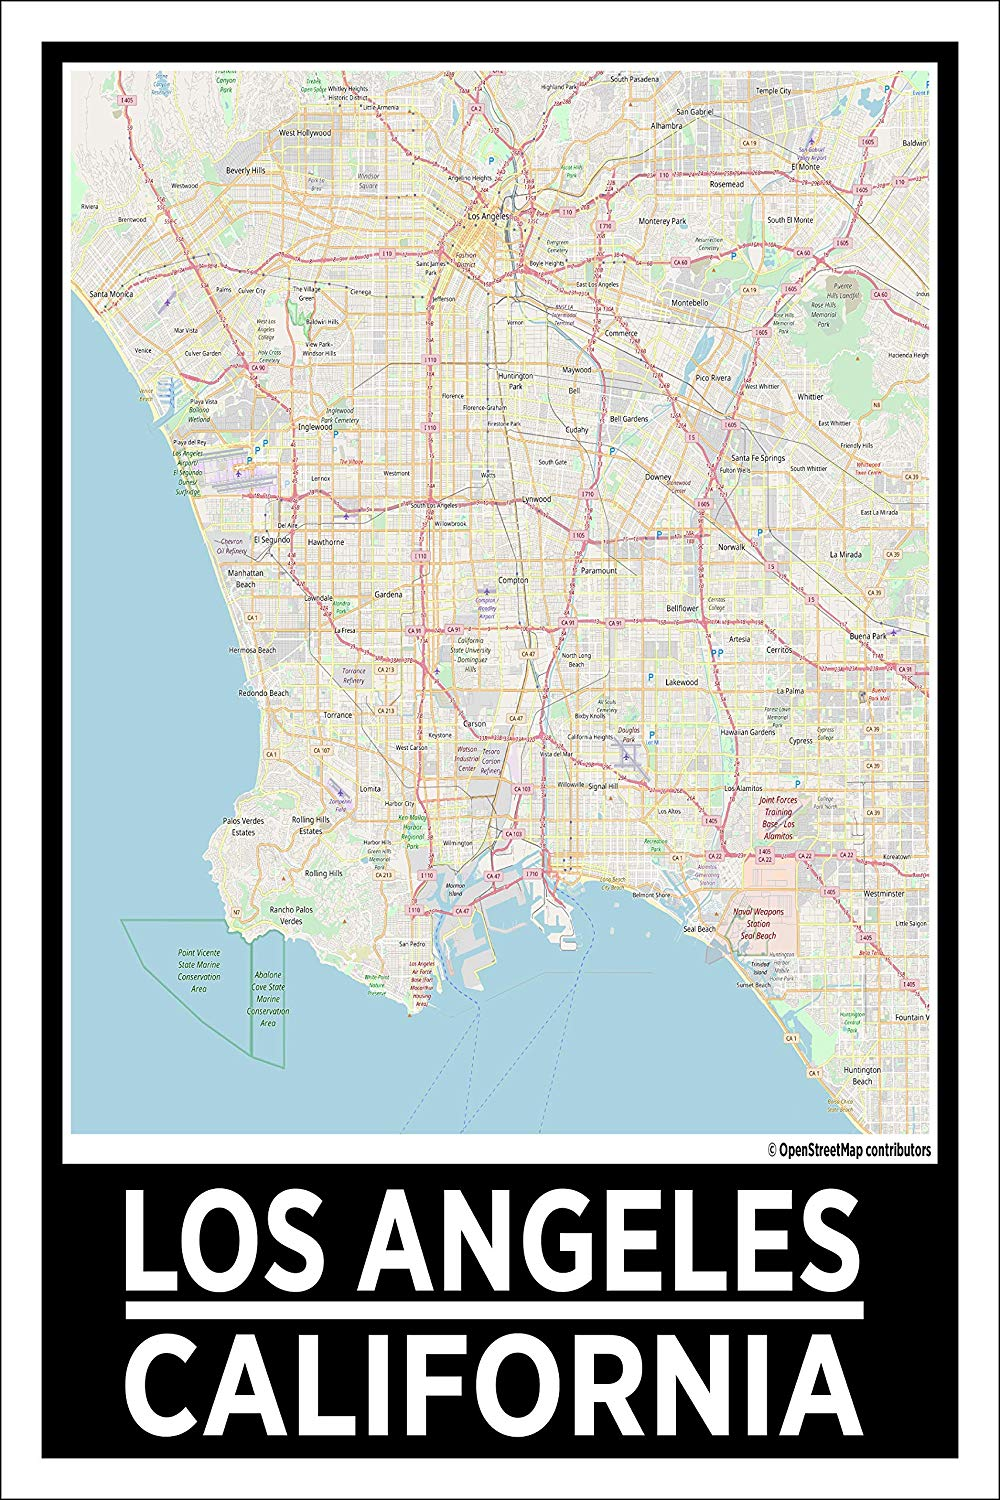 "Spitzy's Los Angeles California Map Poster - Home Wall Art for Your Bedroom or Home Office - Map of Los Angeles, City Map Poster (12"" x 18"" Dimensions Include a White .5"" Border)"